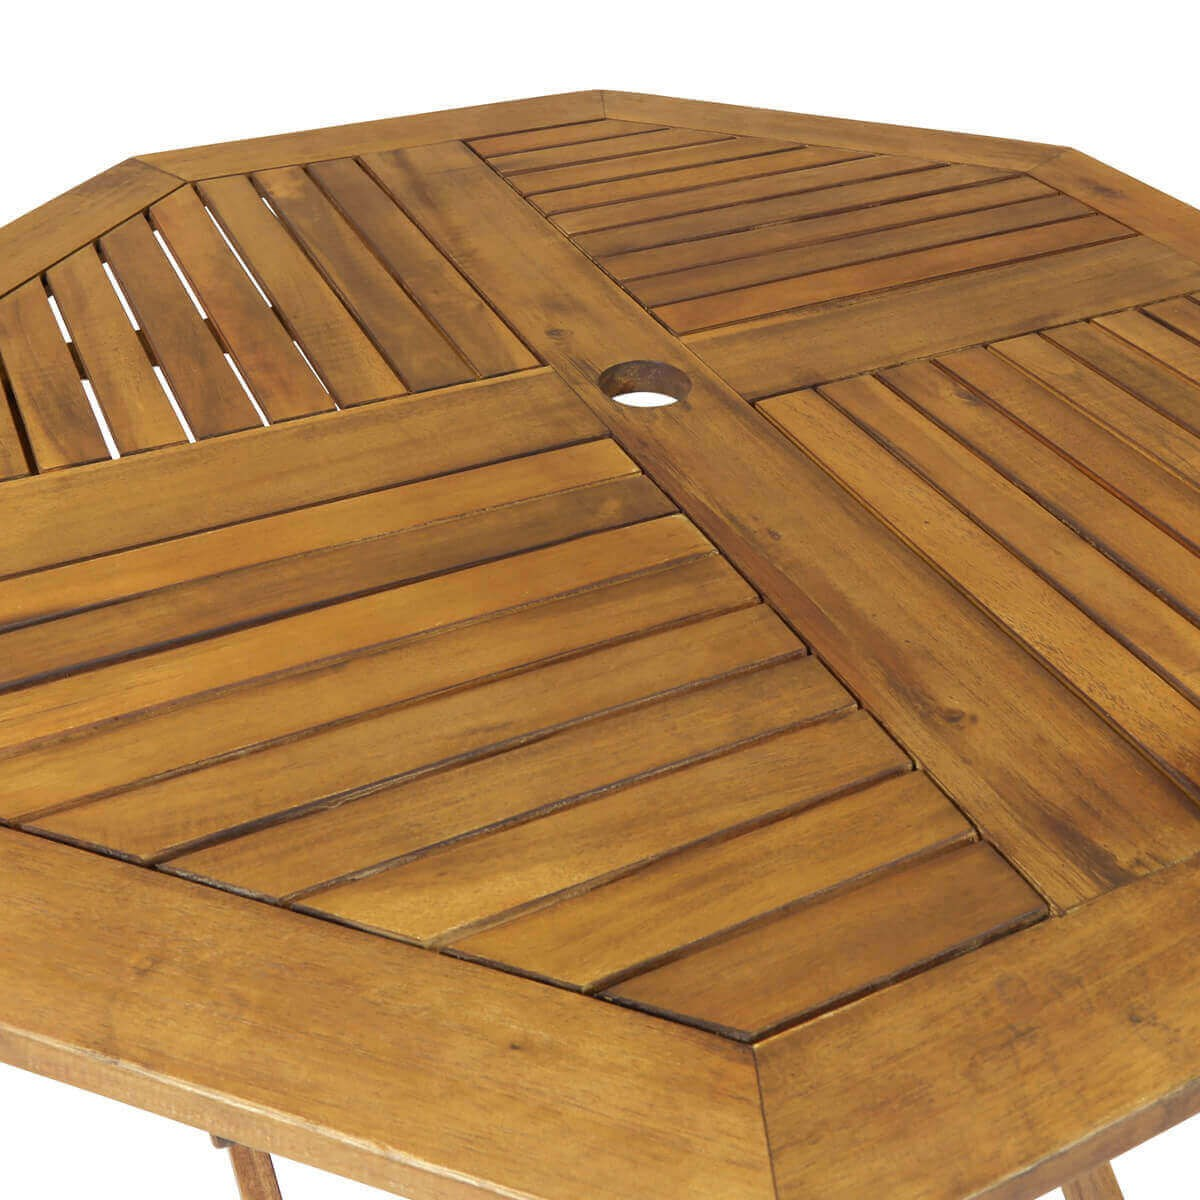 octagonal folding wooden garden table